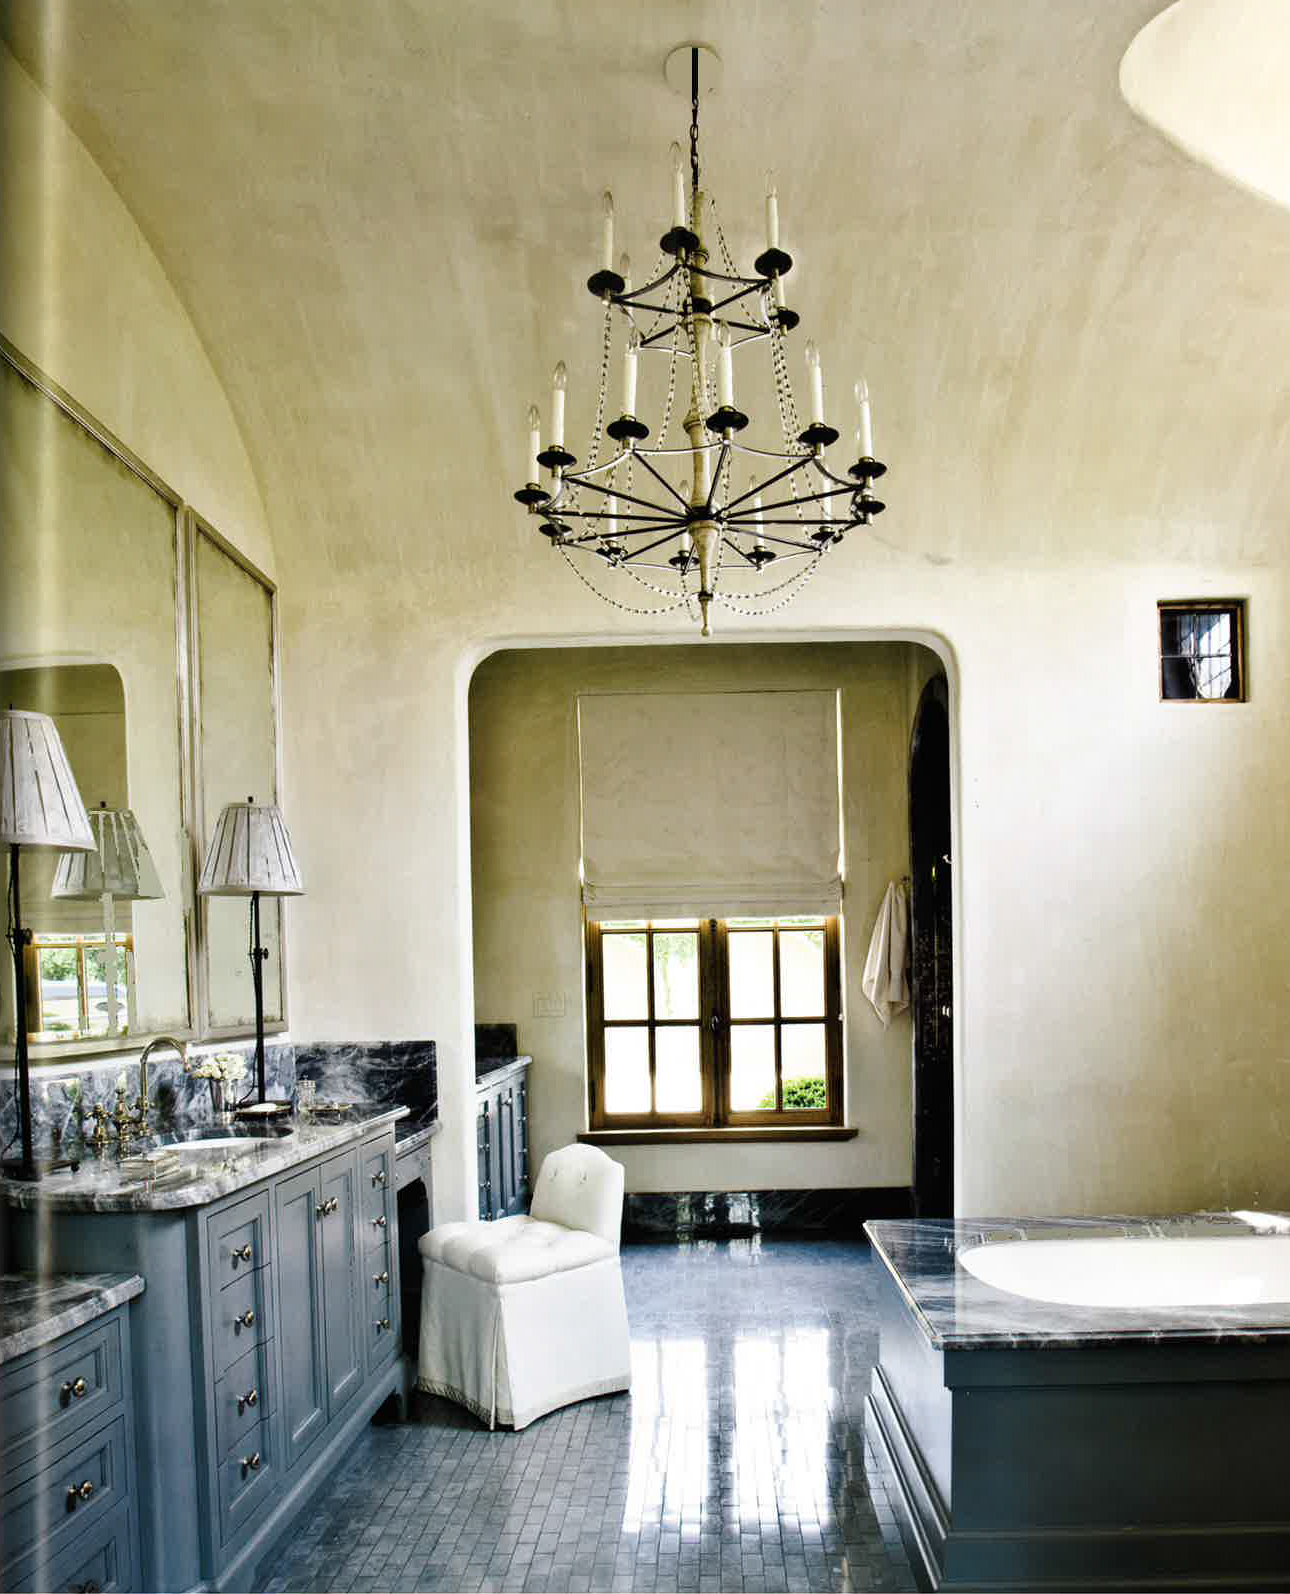 Barbara westbrook gracious rooms the perfect bath